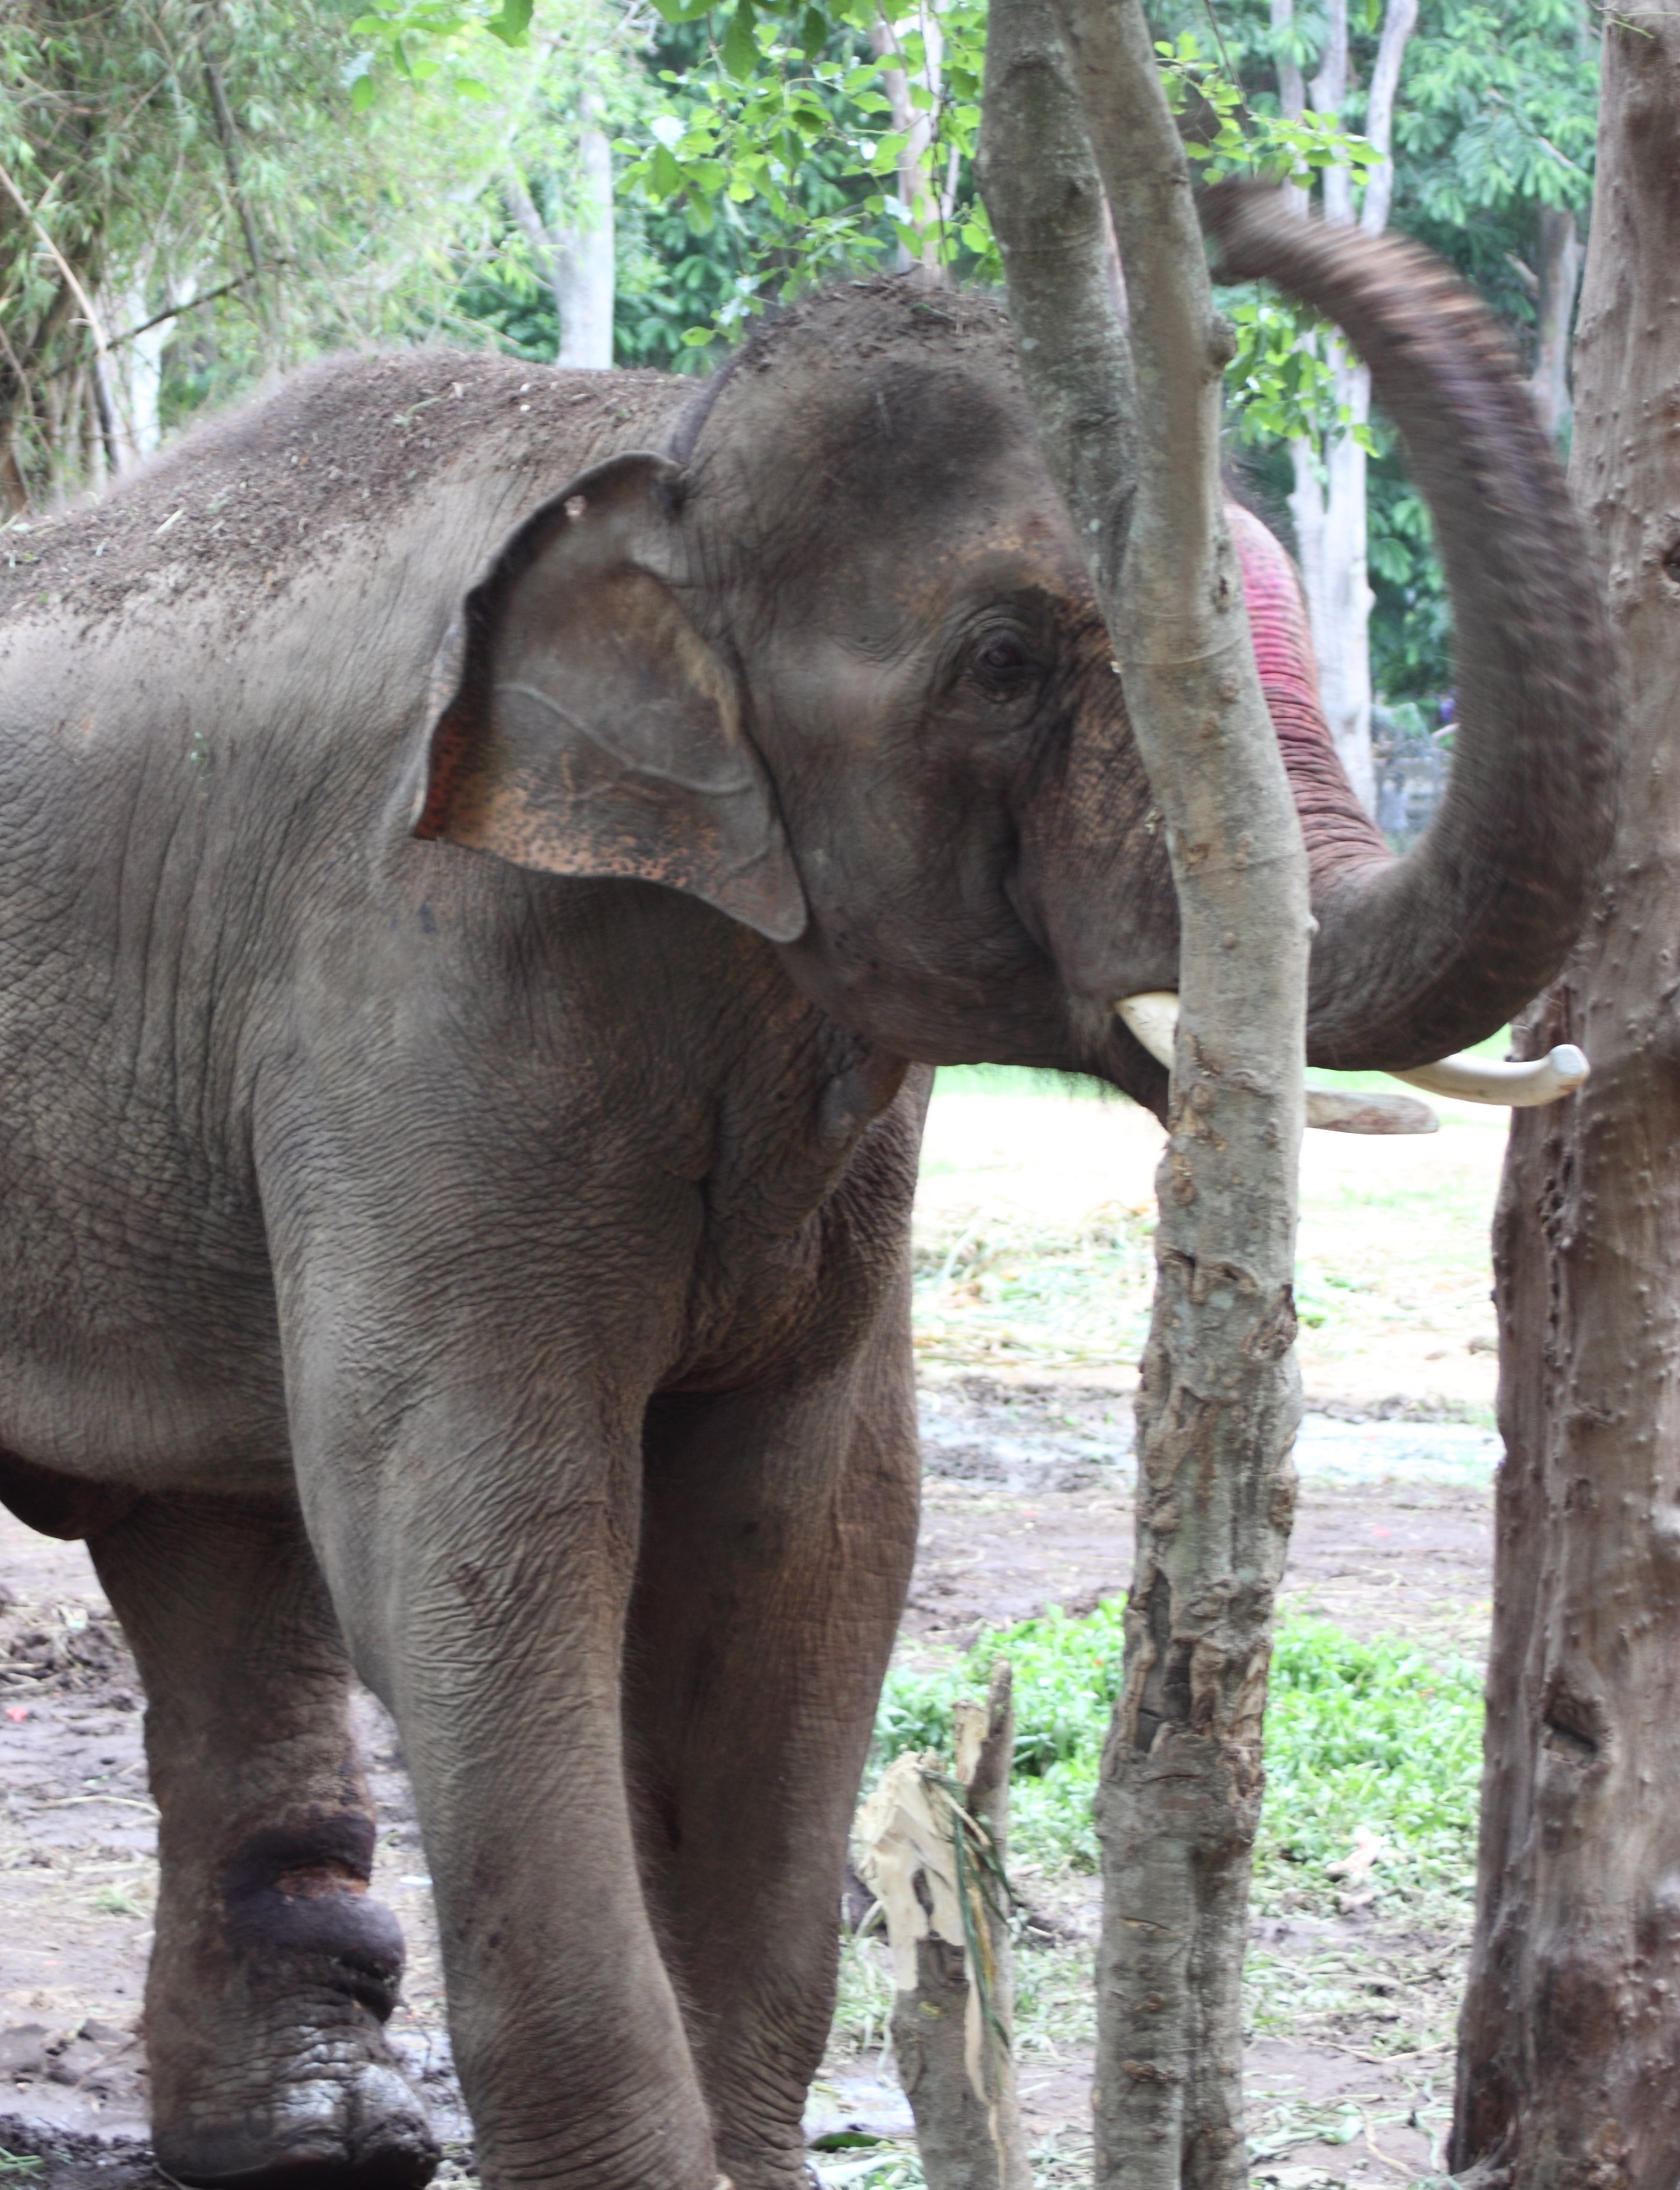 Sunder's leg is still healing from the abuse he endured. Veterinarians, however, report that he is recovering.